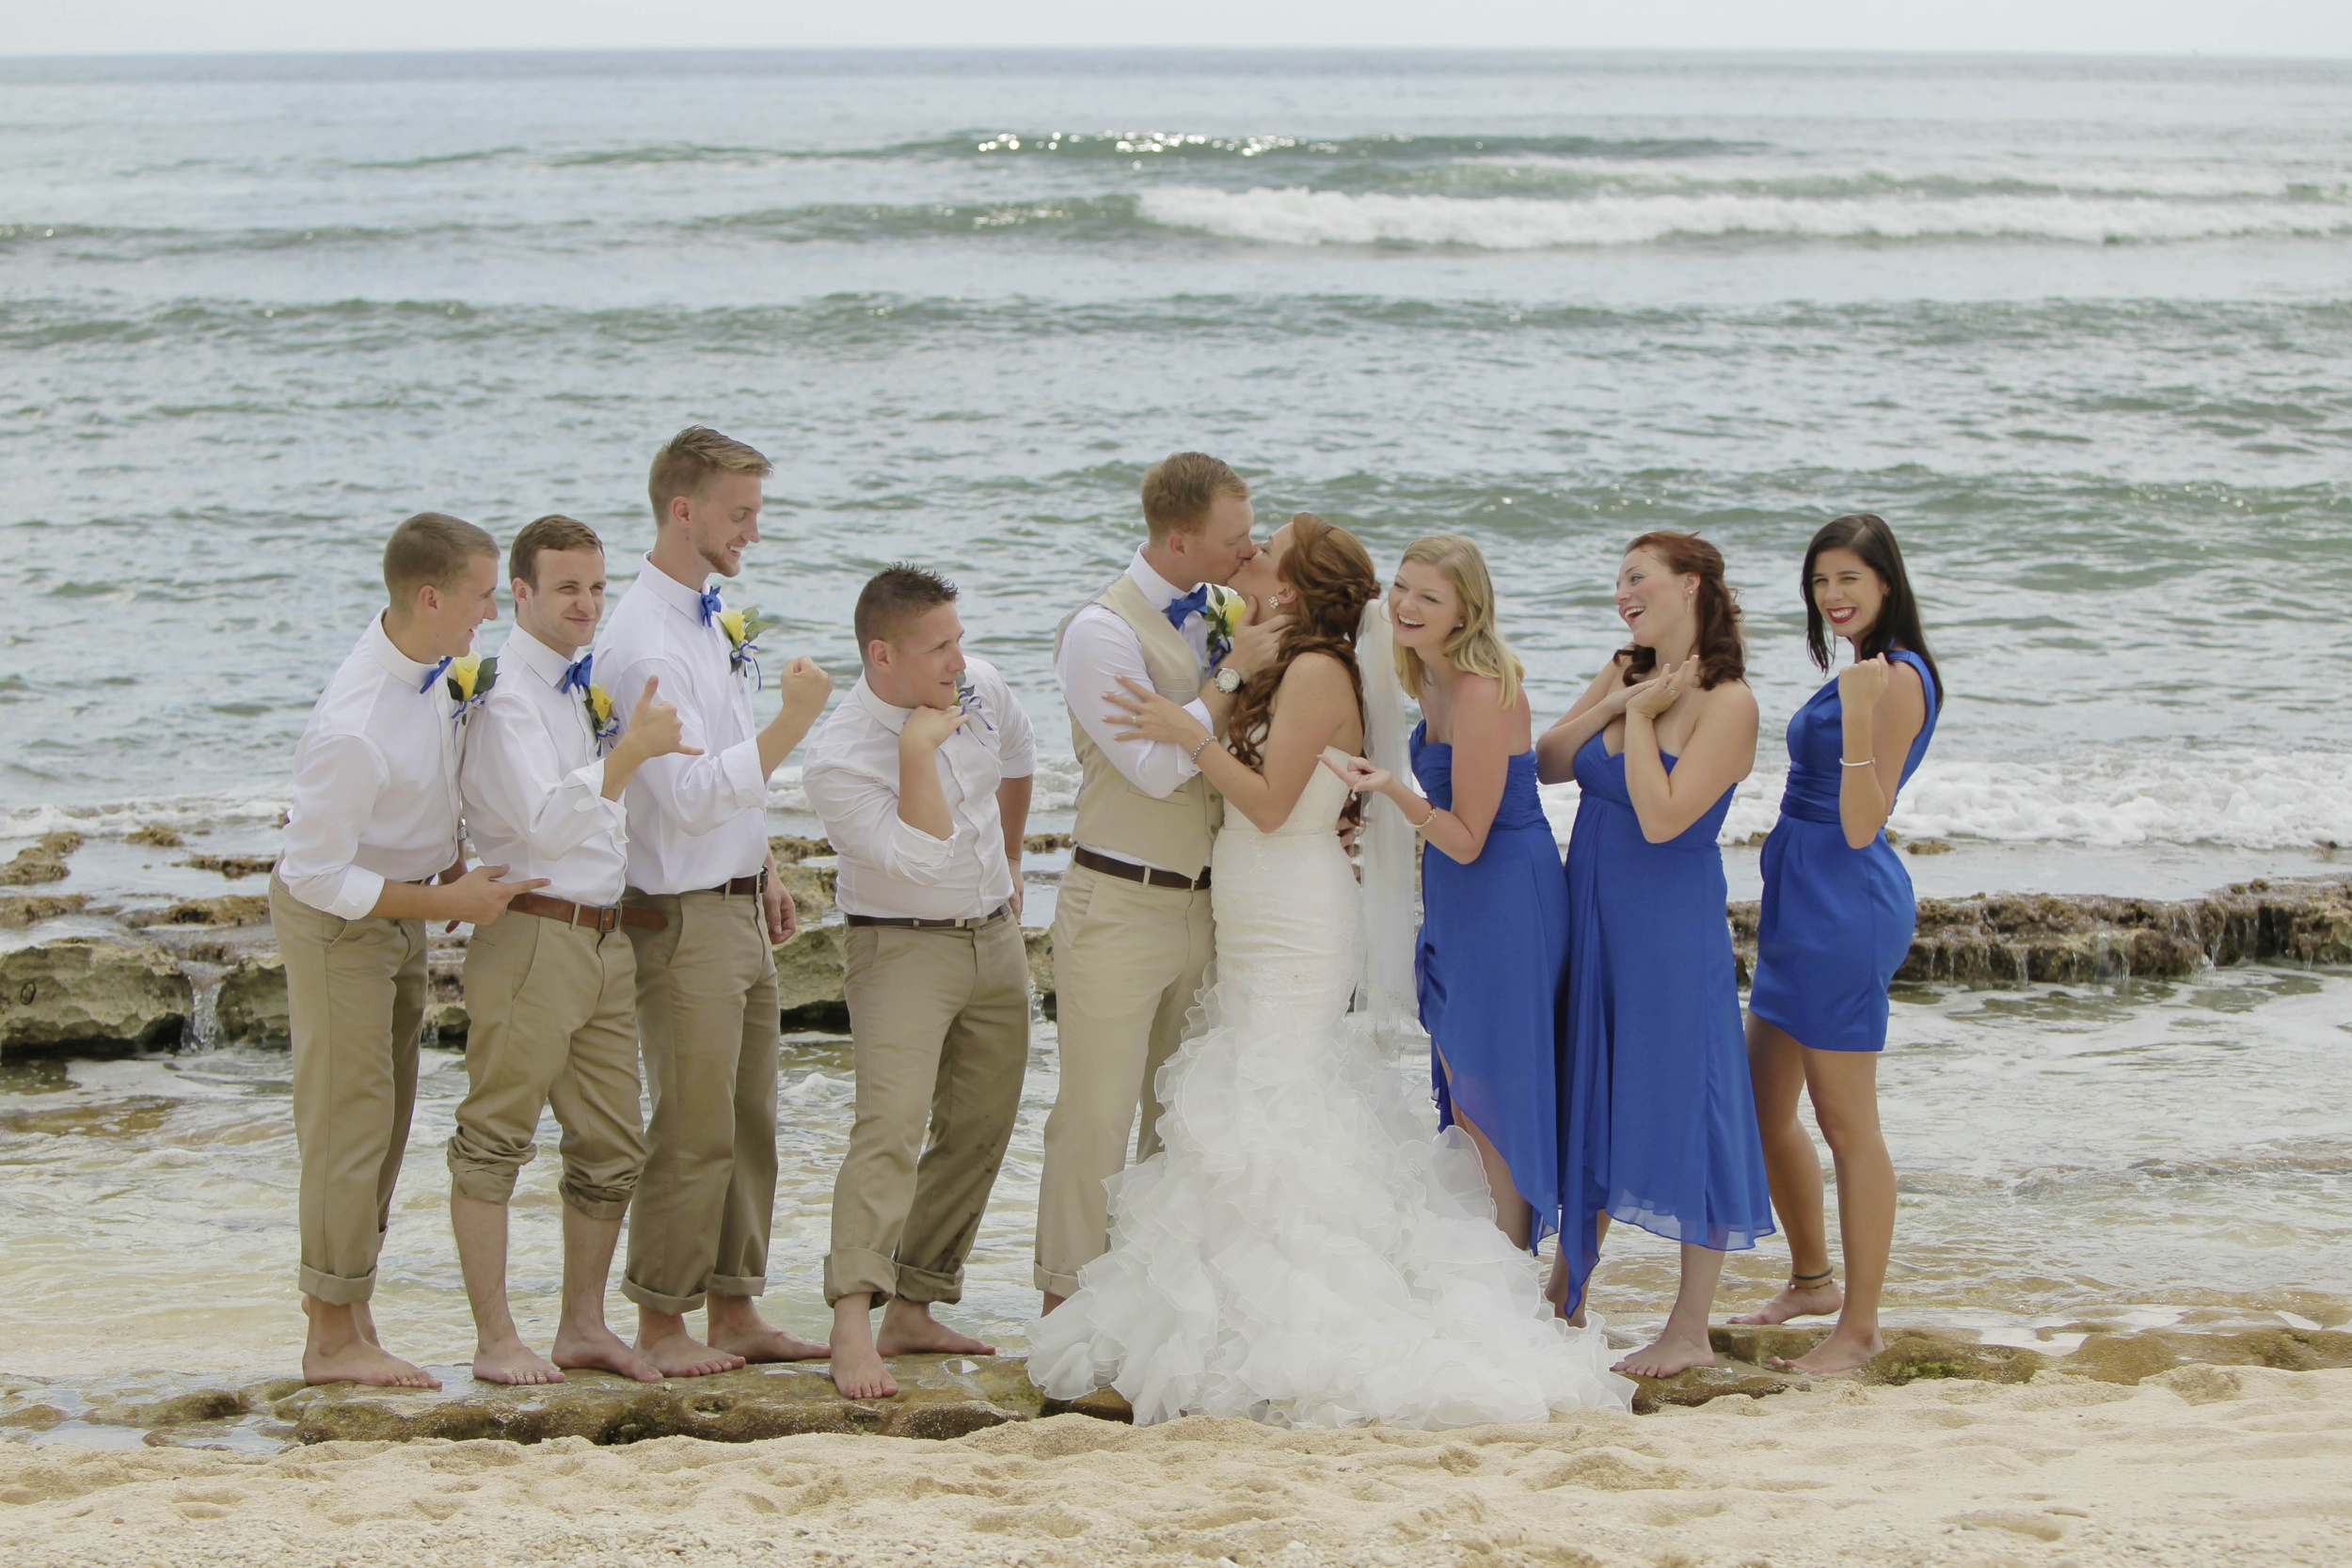 Recent wedding group at Surfer's Beach.